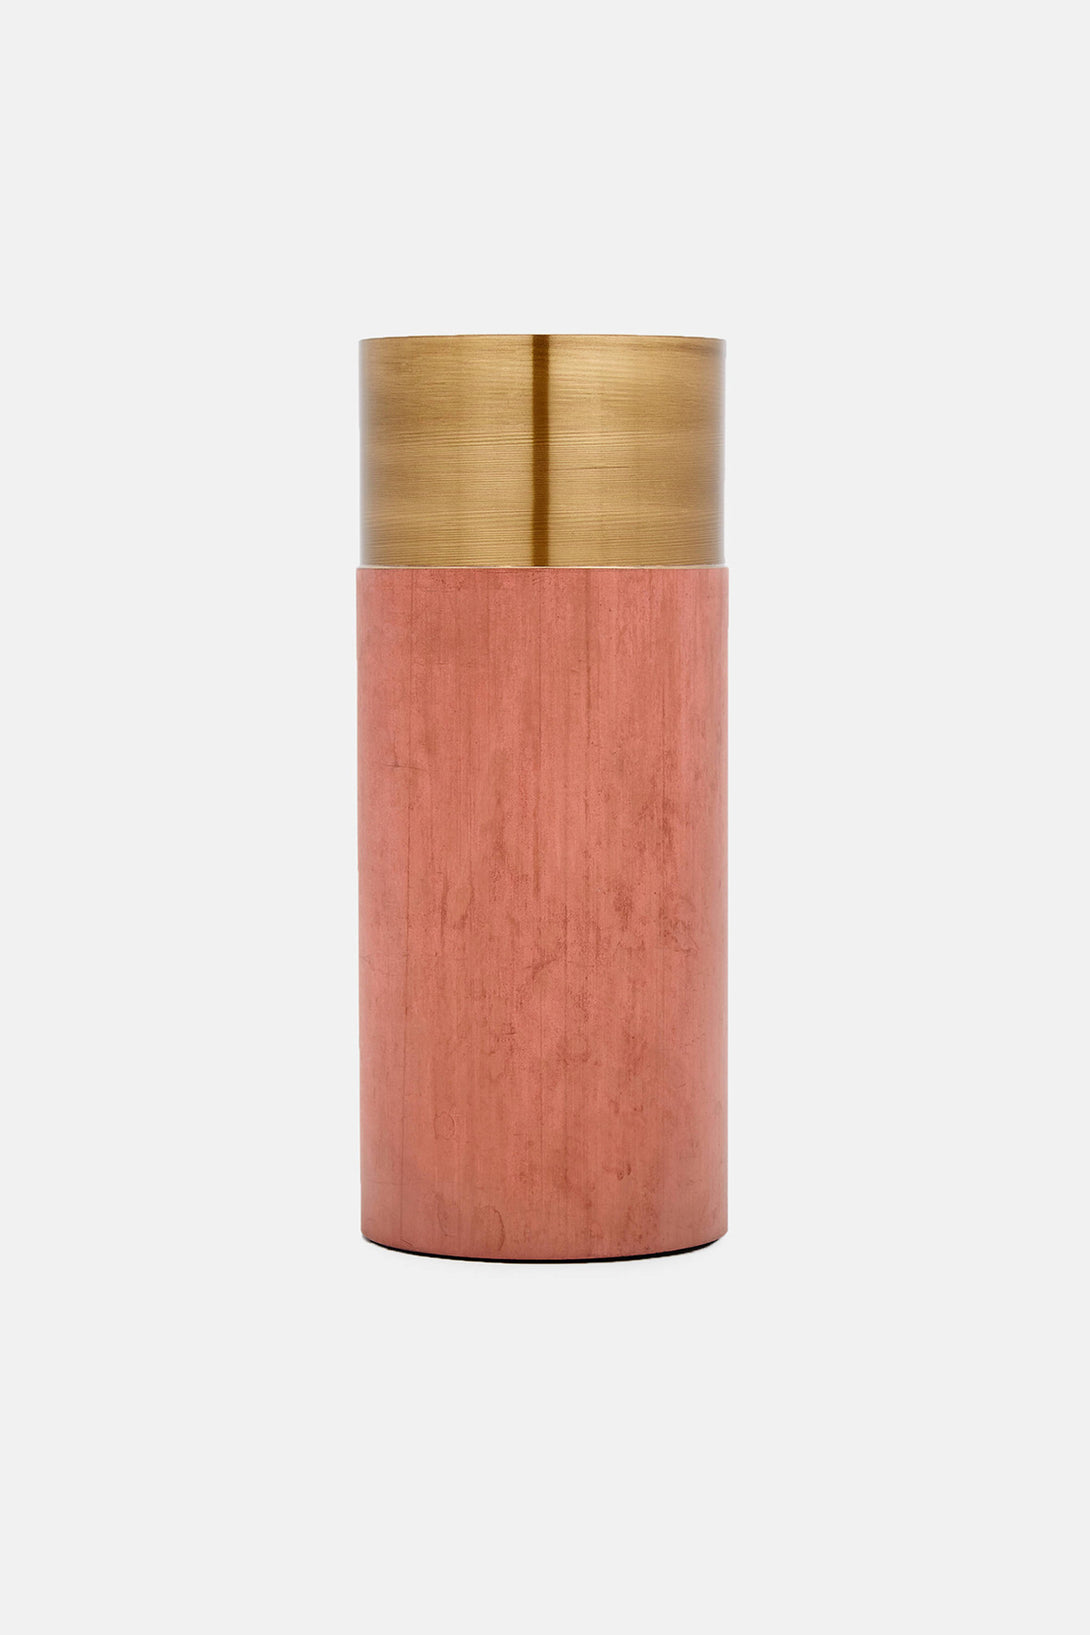 Terracotta Brass True Colour Vase by  Lex Pott